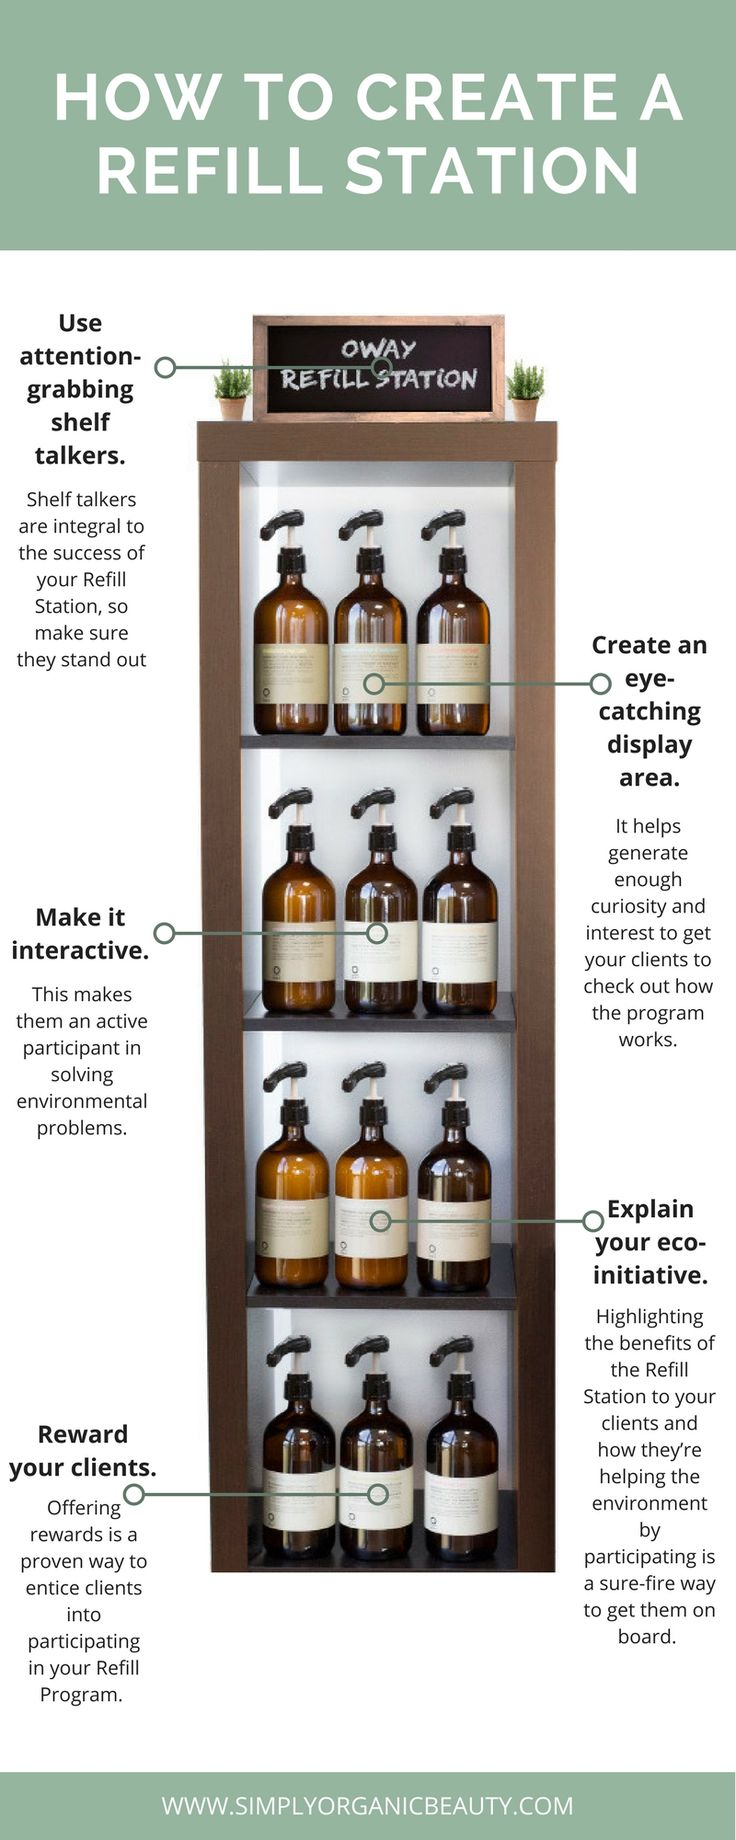 We LOVE our Salon's Refill Product Program! It benefits our clients, salon business and the planet. #EcoSalon #SimplyOrganicBeauty #Oway